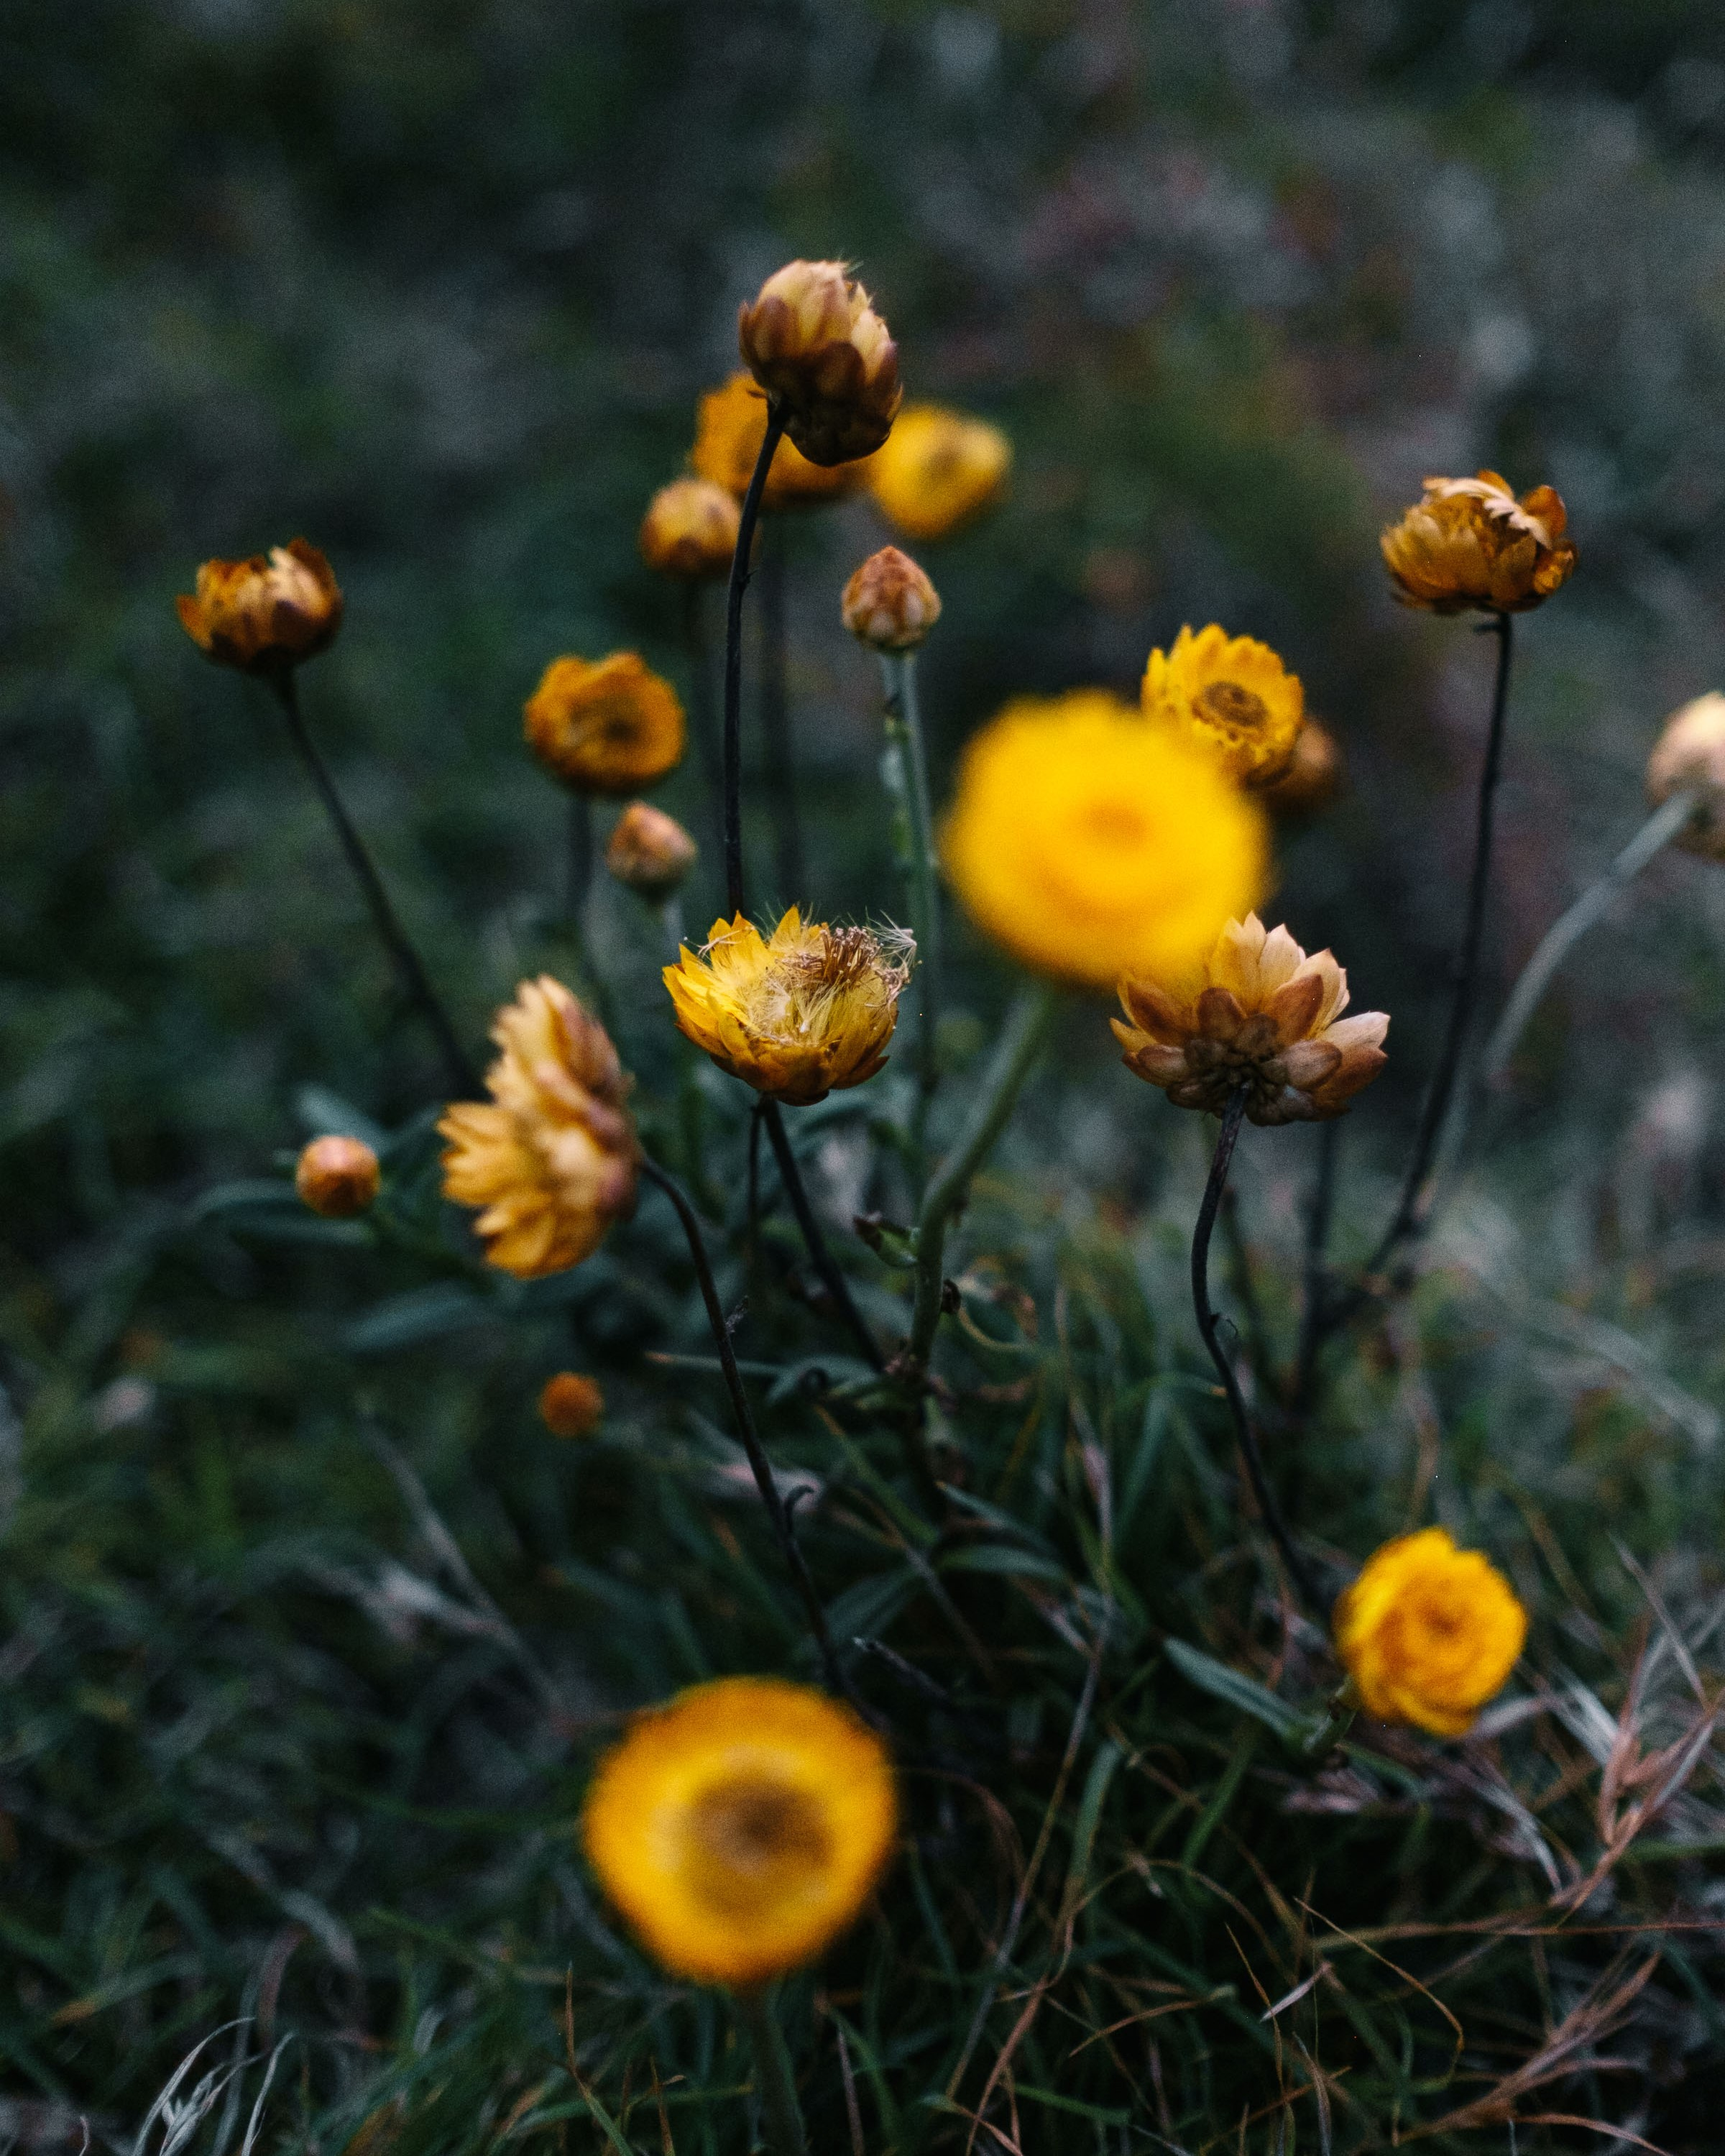 The Golden Everlasting flower (Xerochrysum bracteatum). Photo: Noah Strammbach